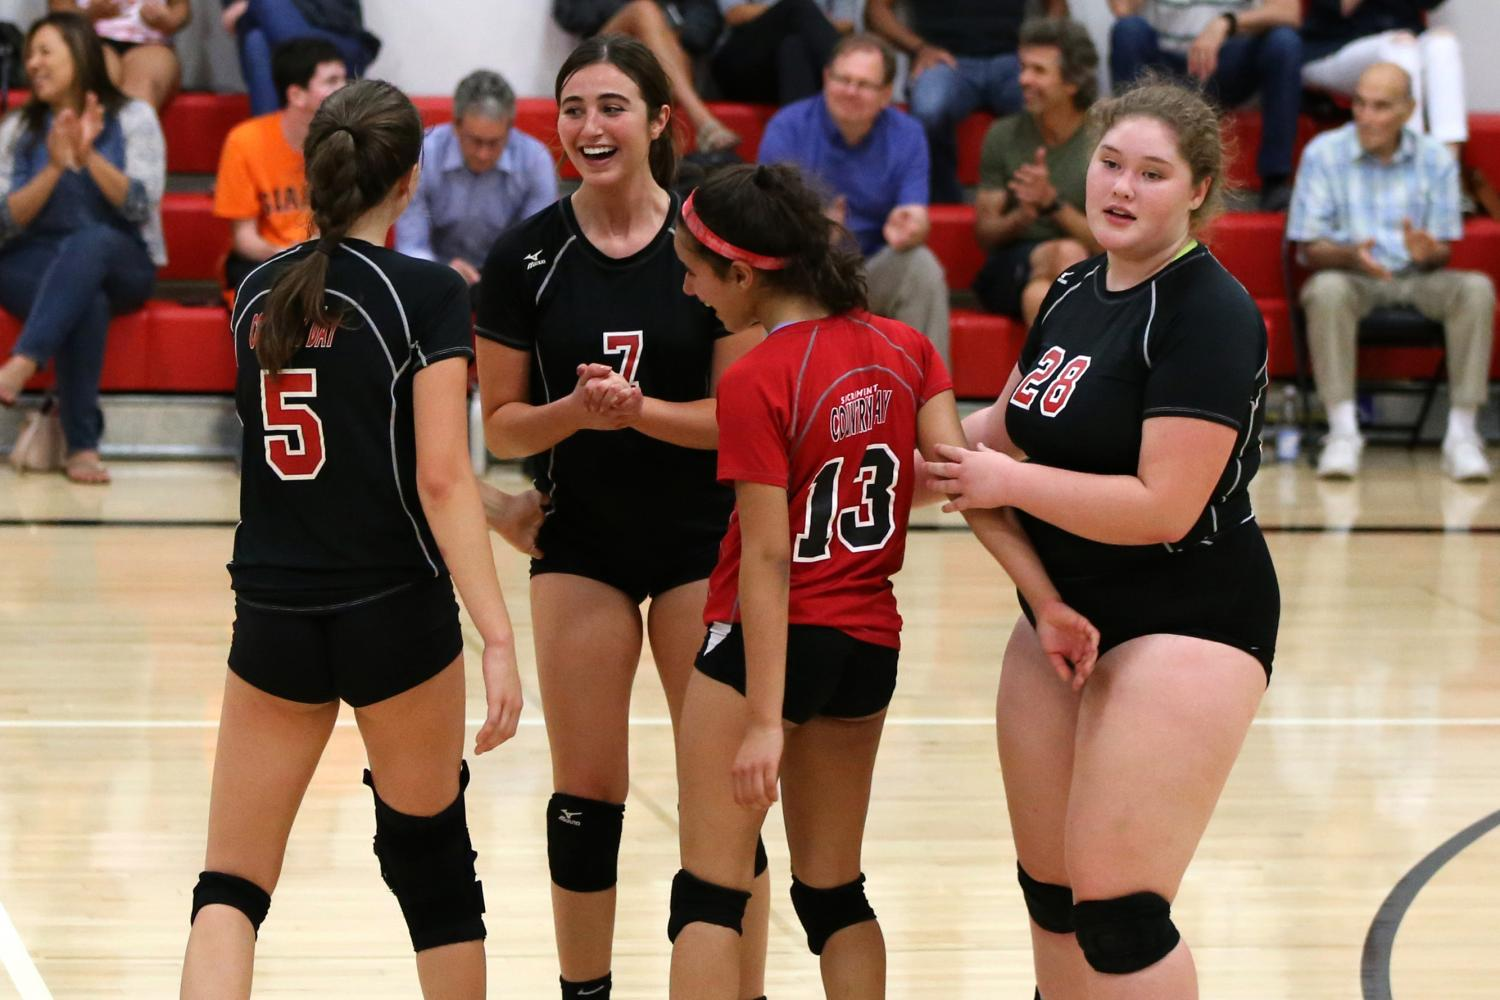 Varsity girls have 'outstanding' game despite losing to tough opponent